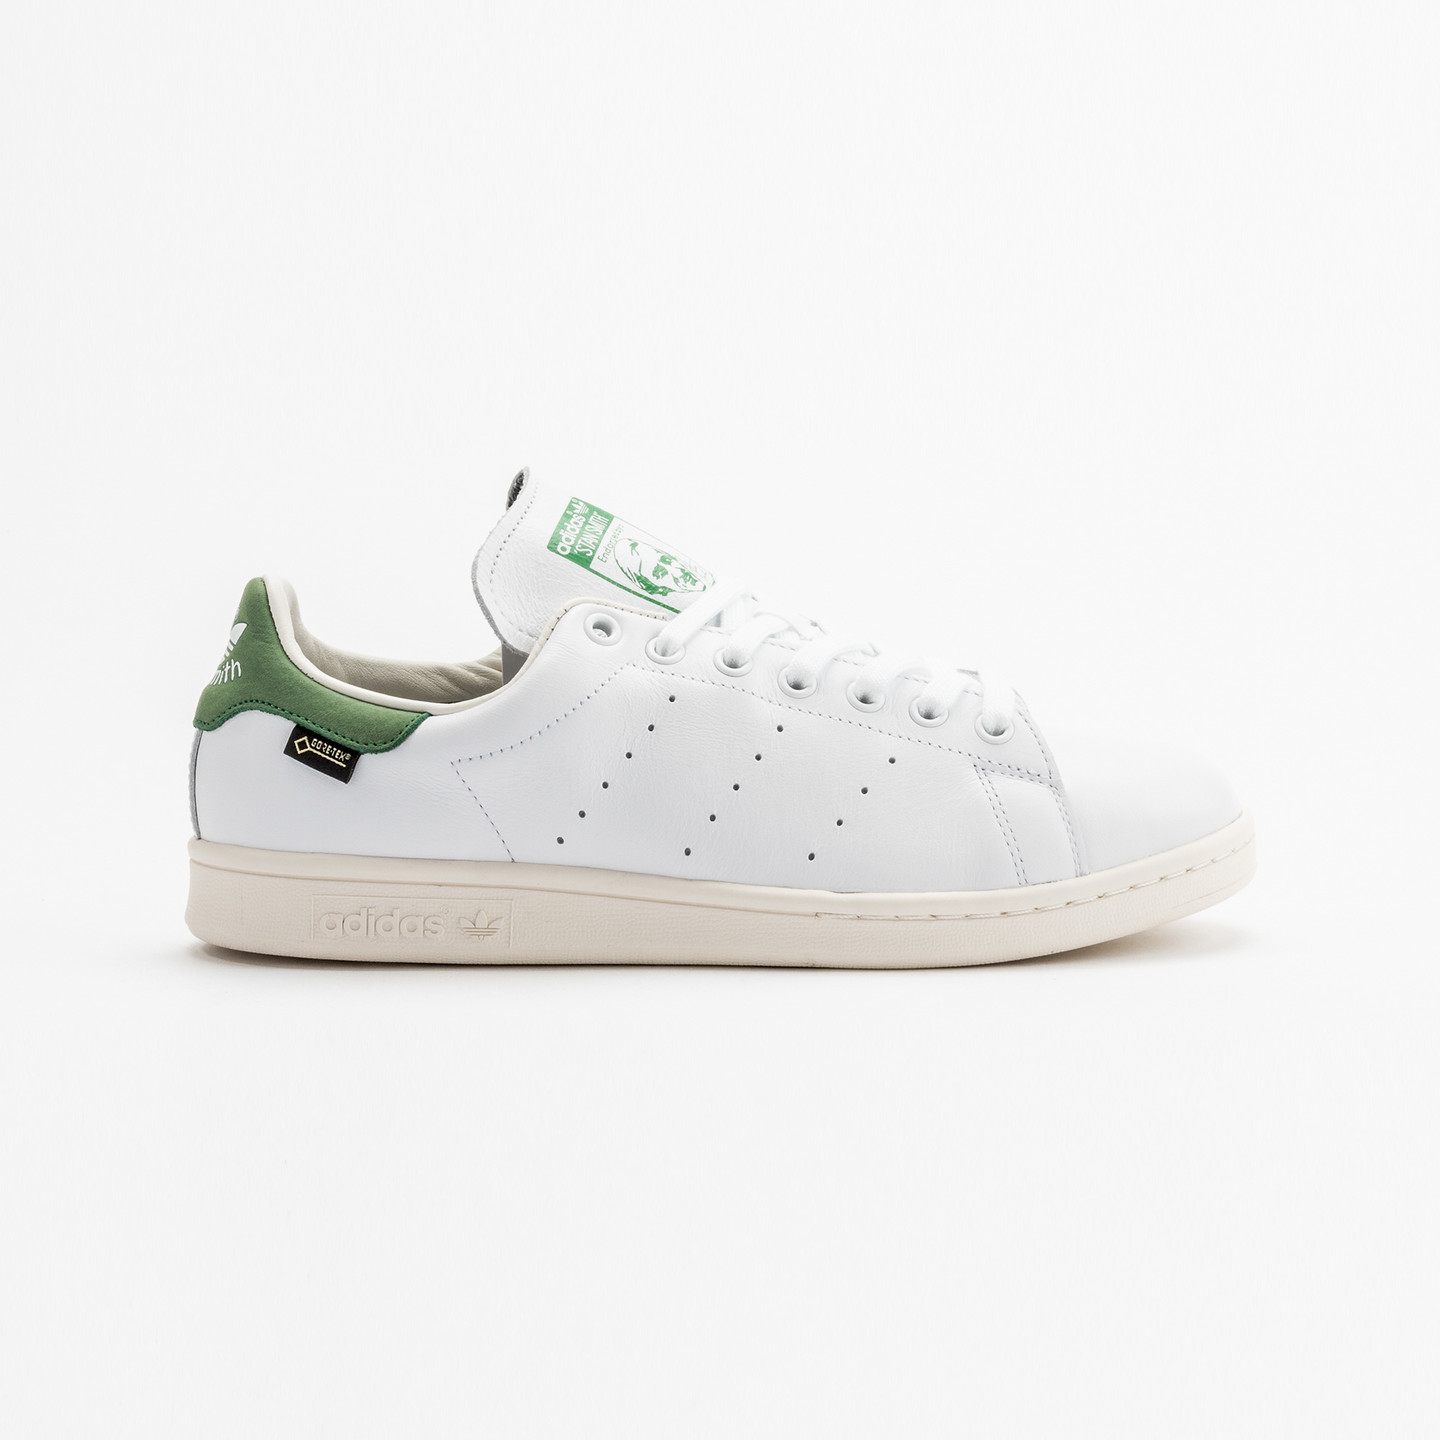 Adidas Stan Smith GTX Running White / Green S80049-42.66